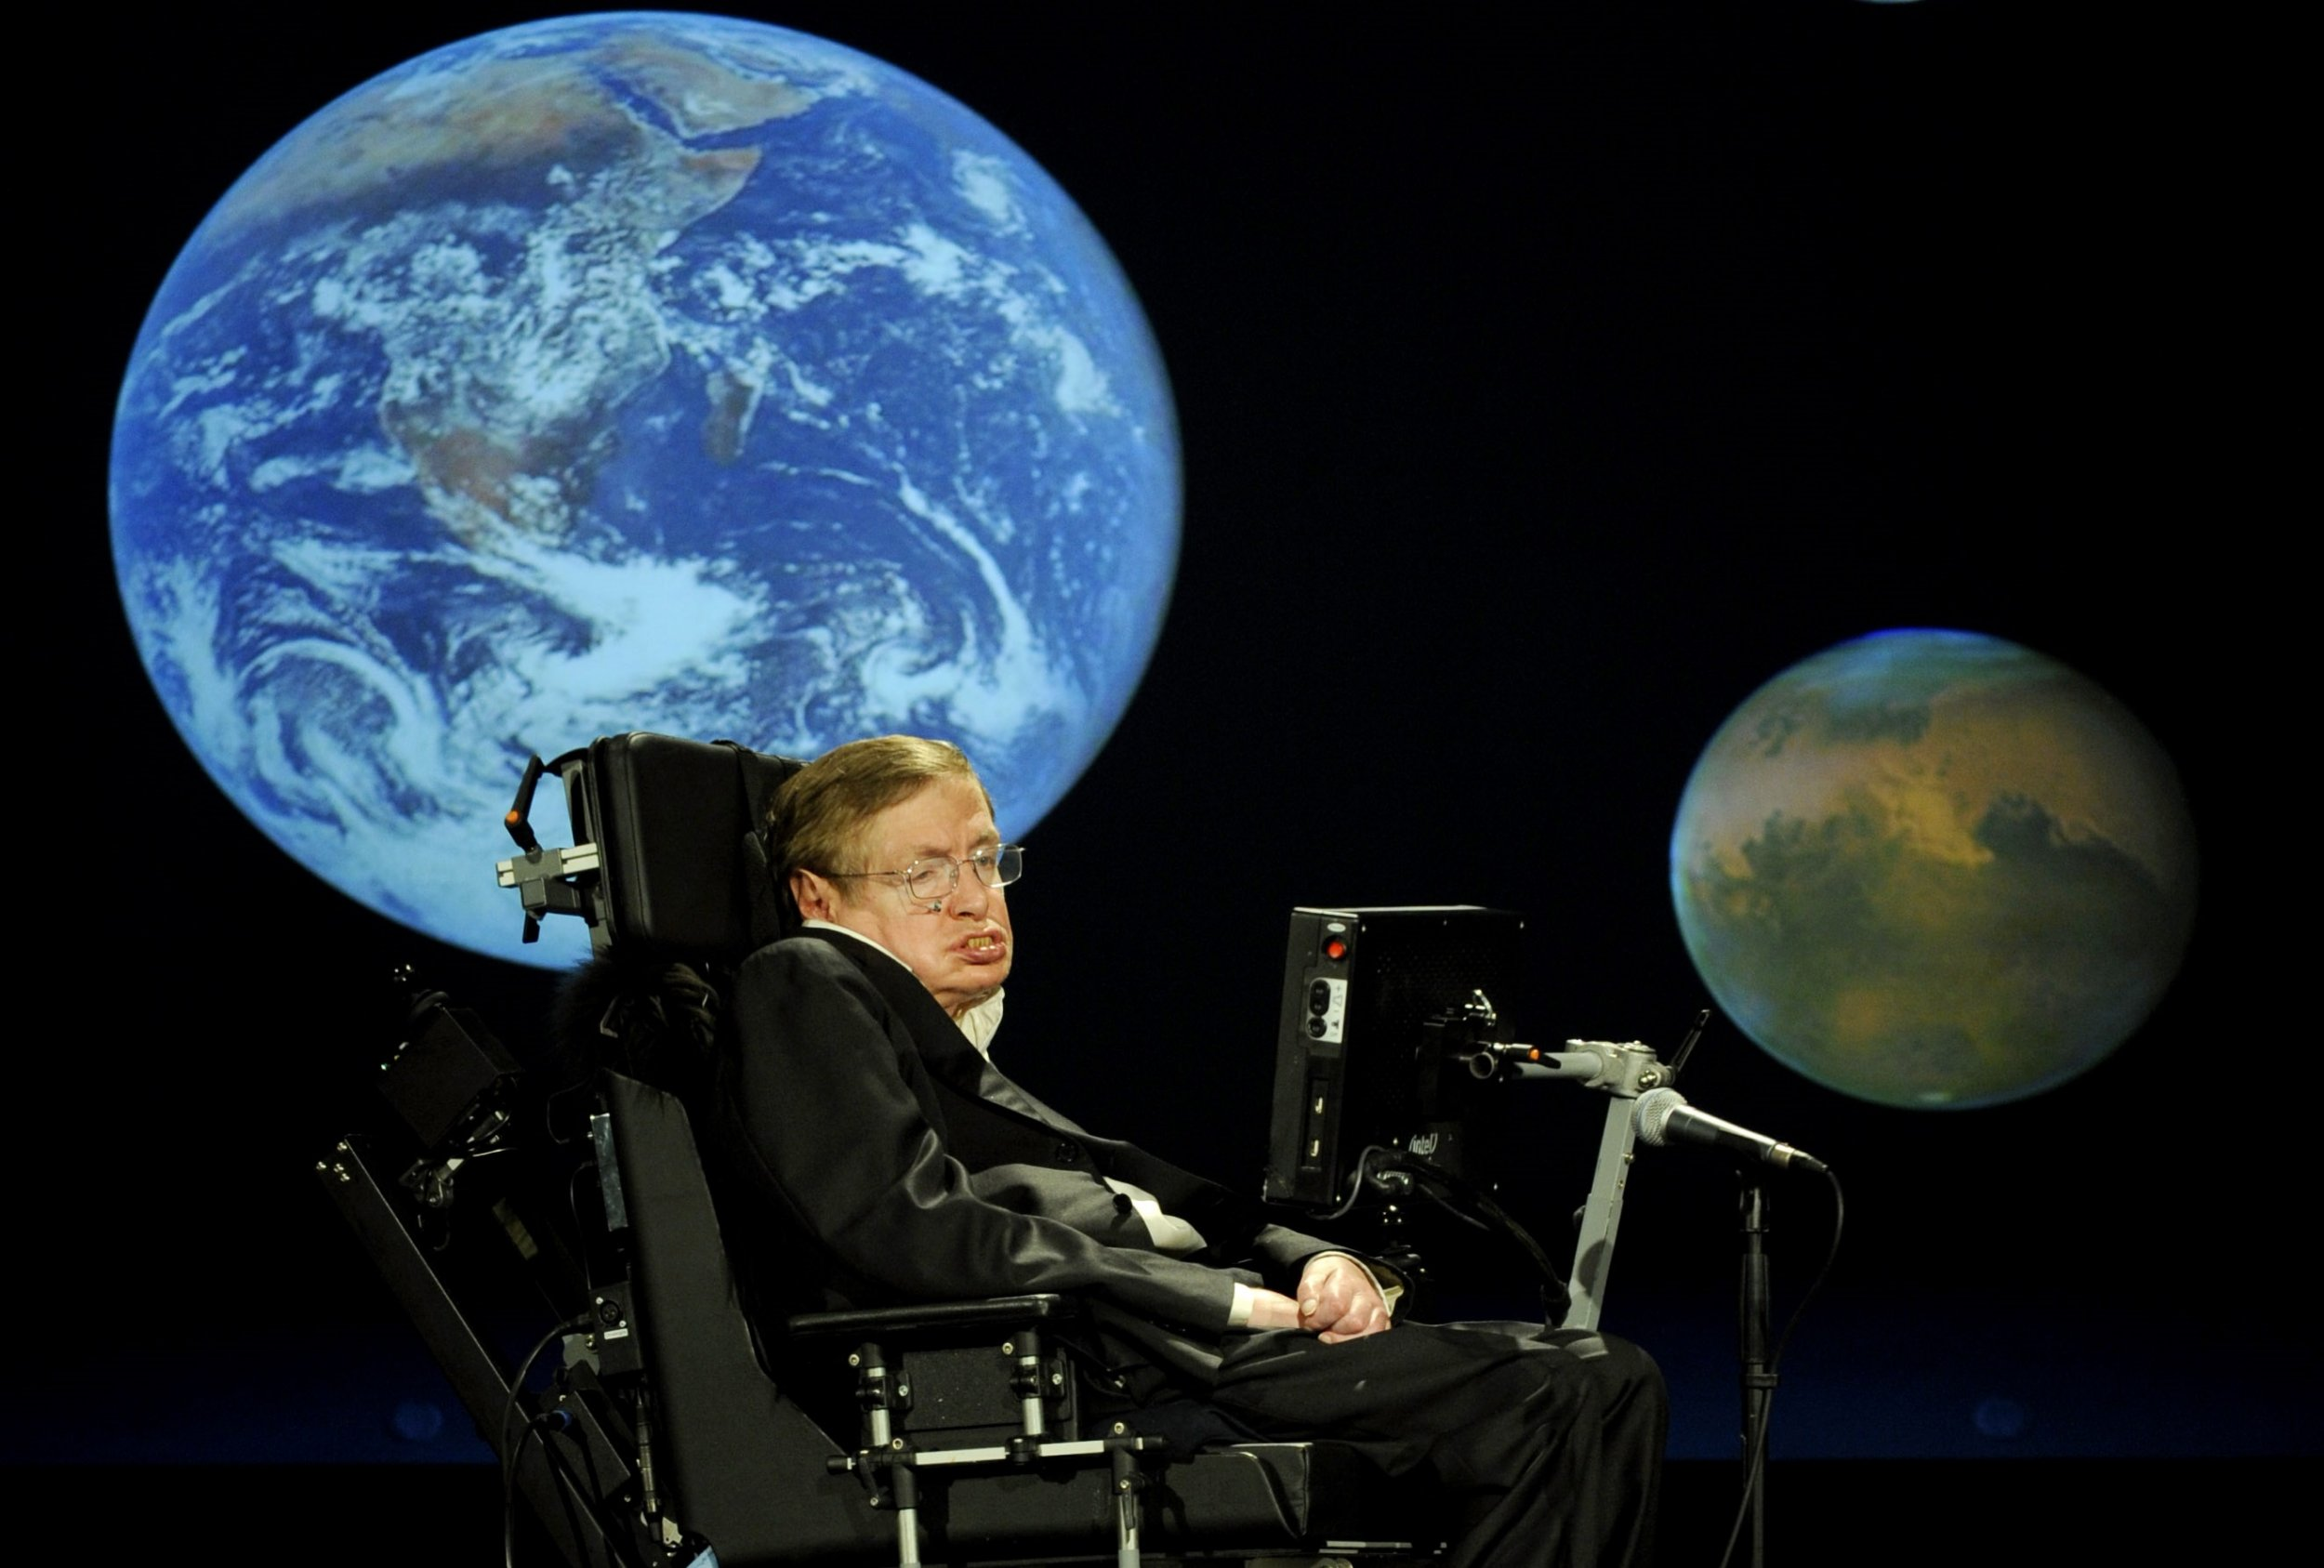 stephen hawking teams up with billionaire to hunt aliens